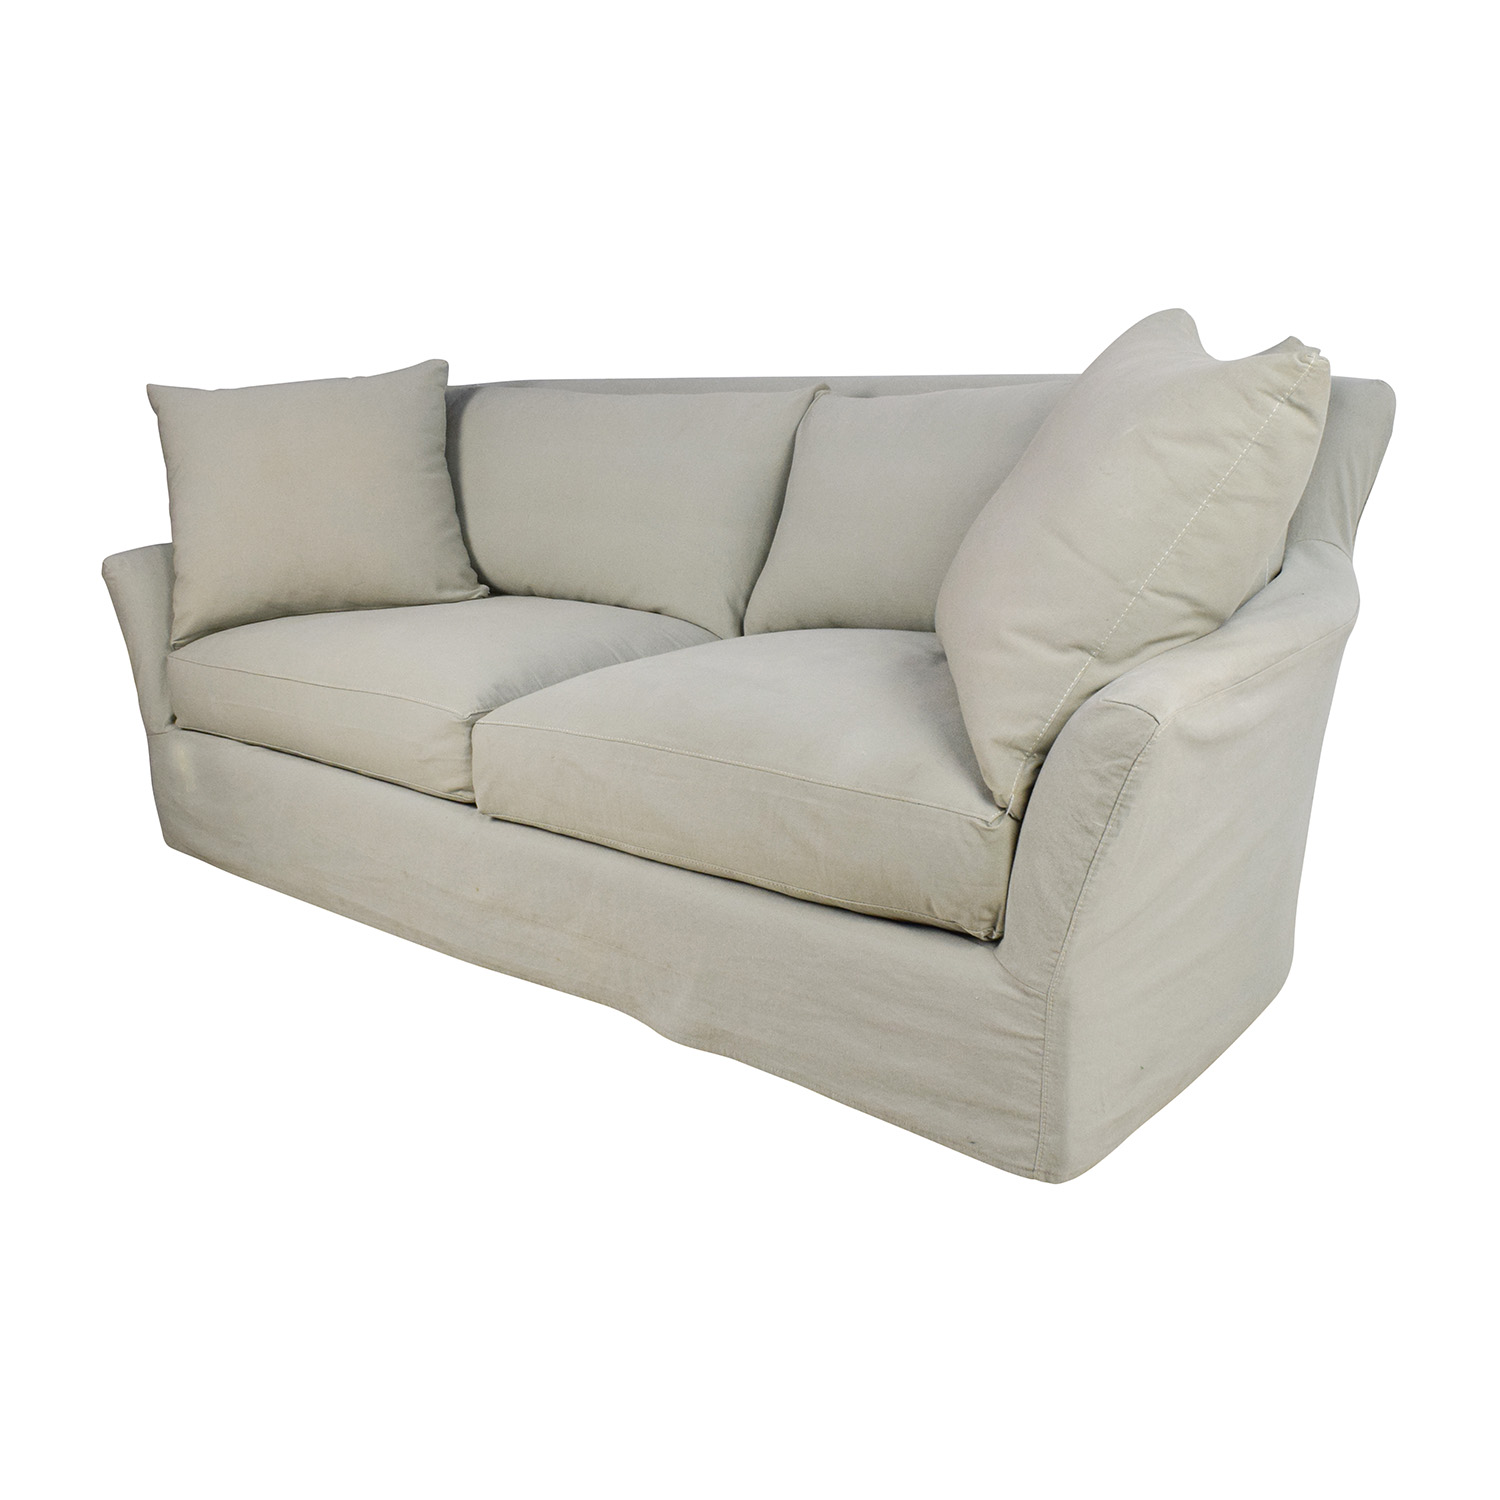 crate and barrel willow twin sleeper sofa reversible pet extra long slipcover rochelle home the honoroak